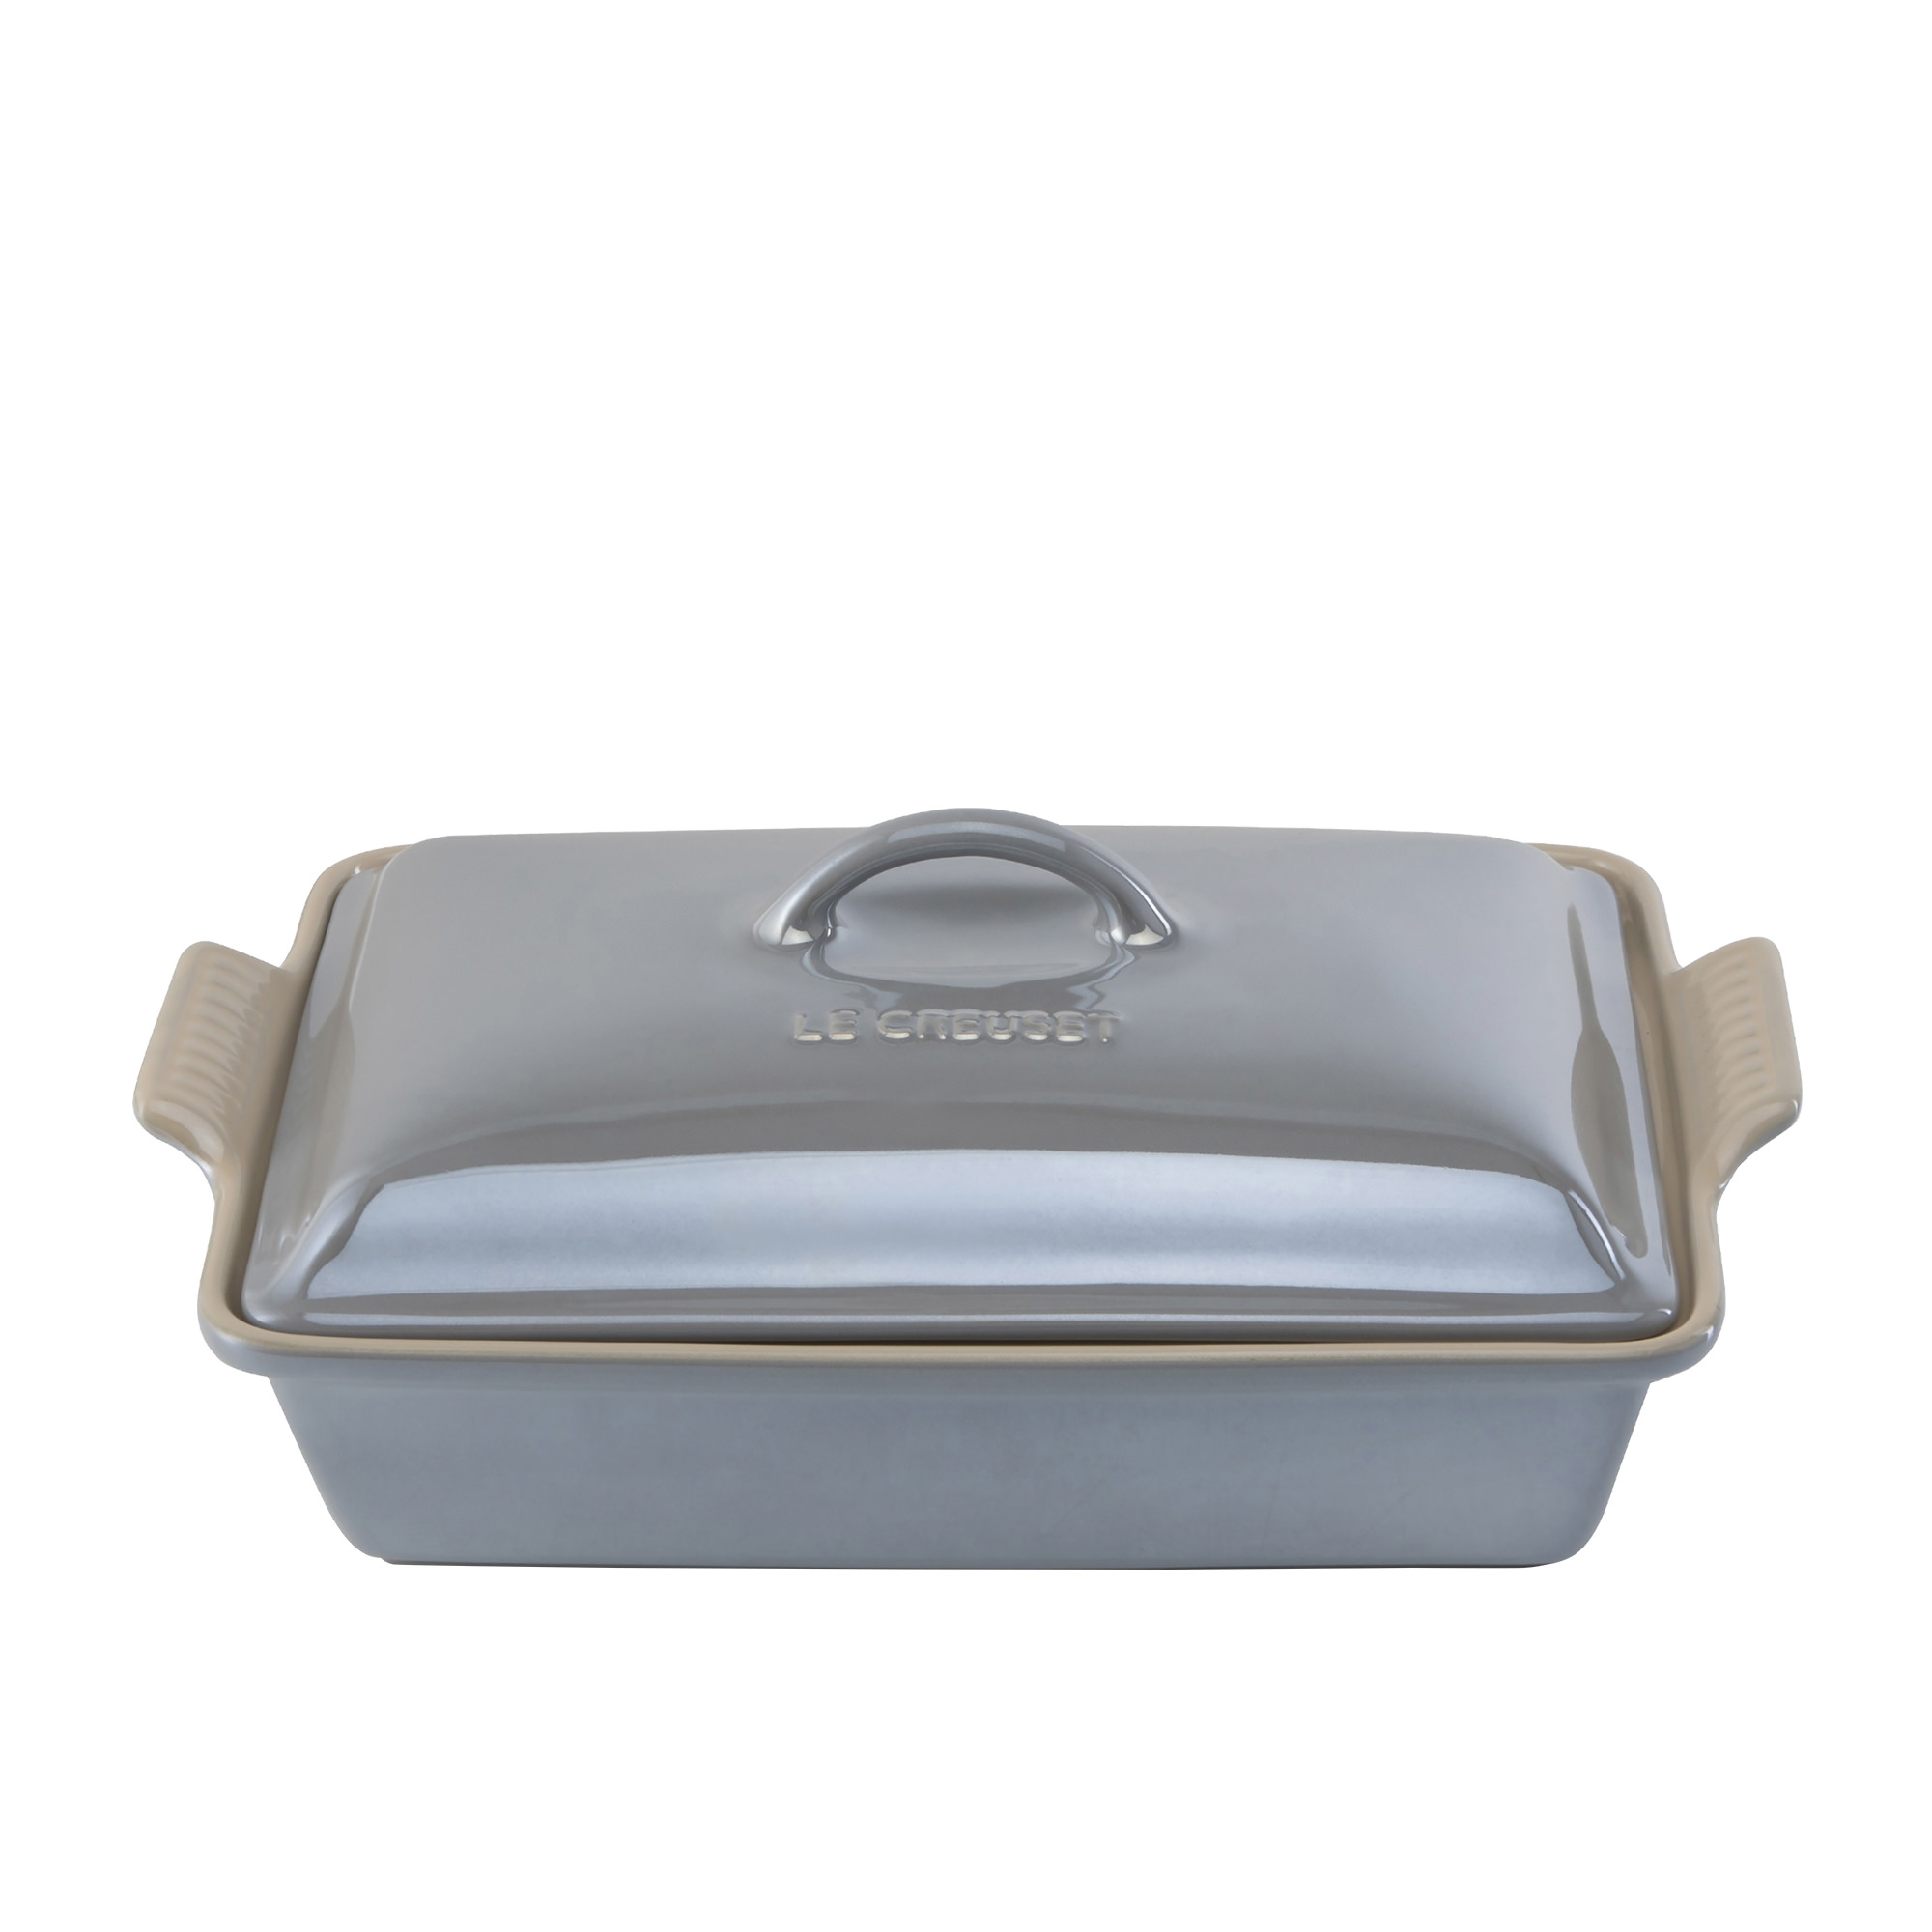 Le Creuset Stoneware Heritage Covered Rectangular Dish 33cm Metallic Mist Grey